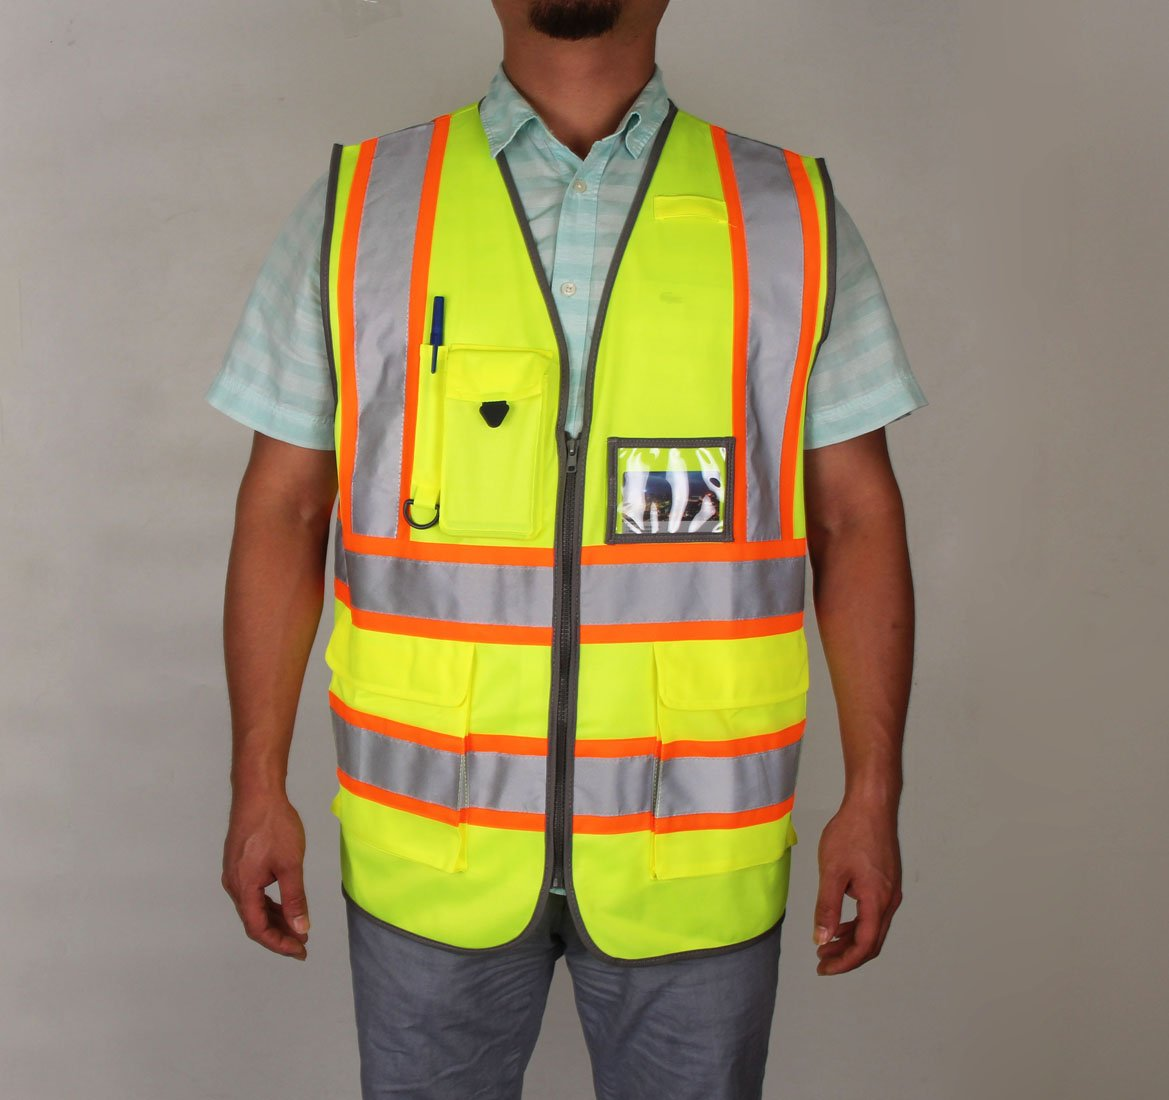 SHORFUNE 1119U High Visibility Reflective Safety Vest with